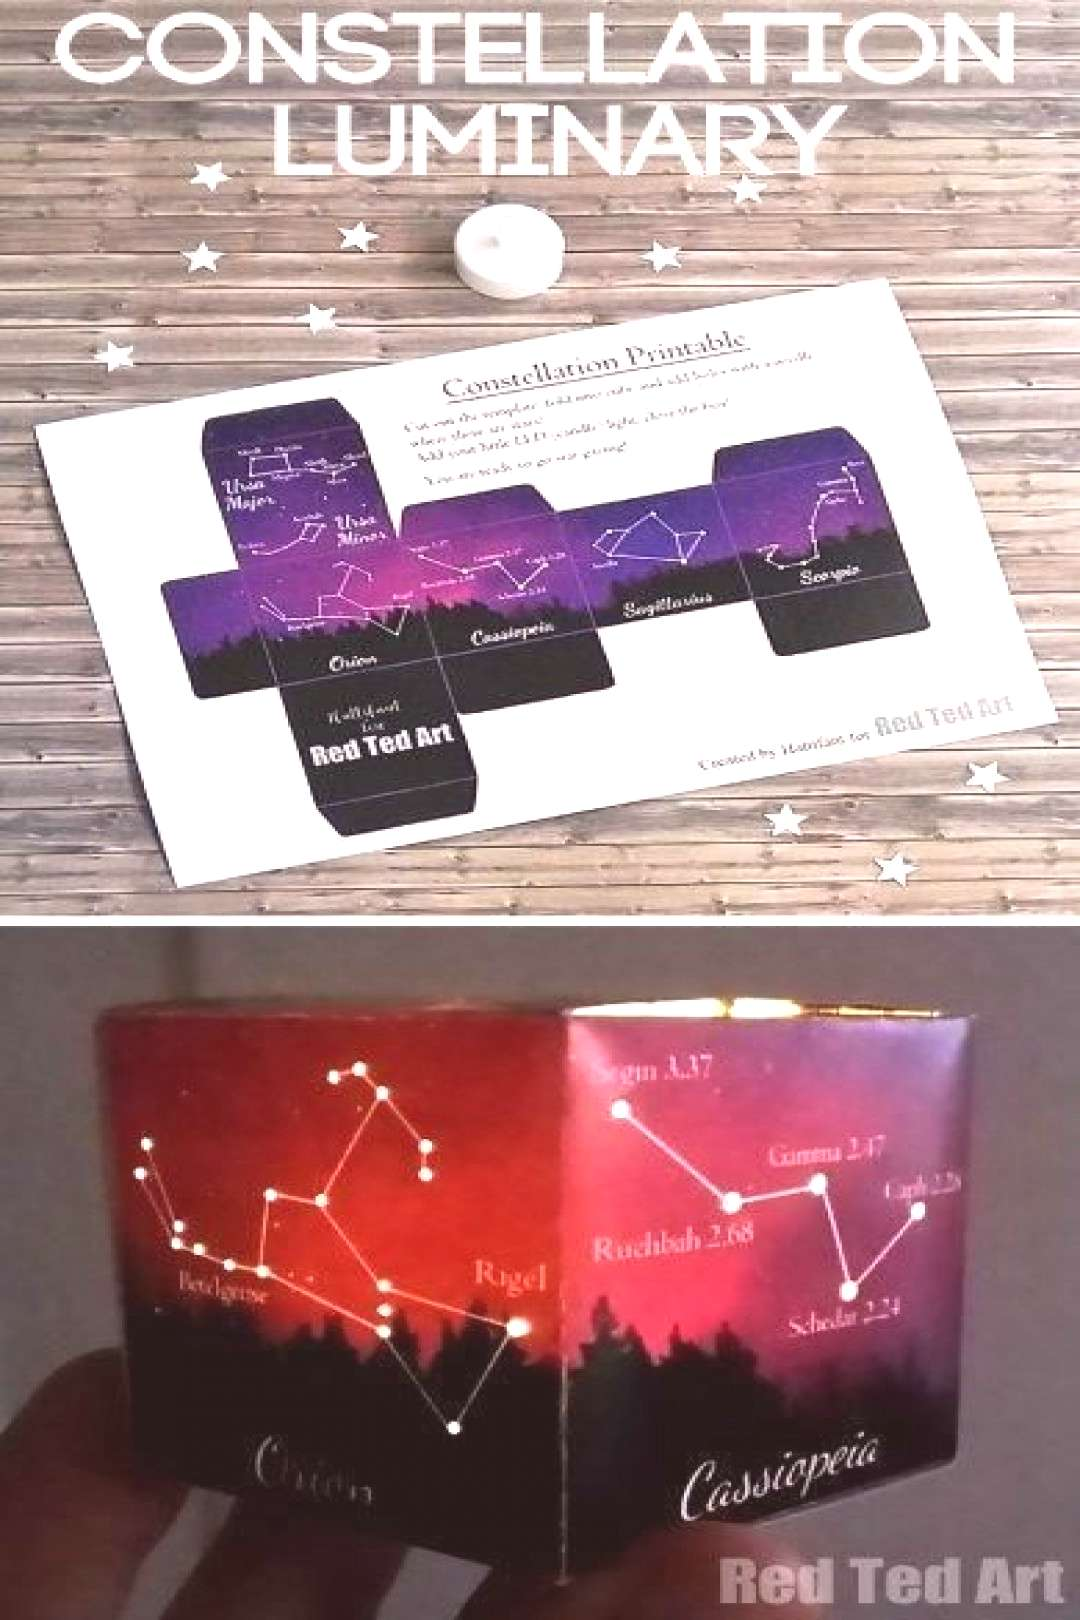 5 Constellations Kids Should Know - a great constellations printable to help kids learn about